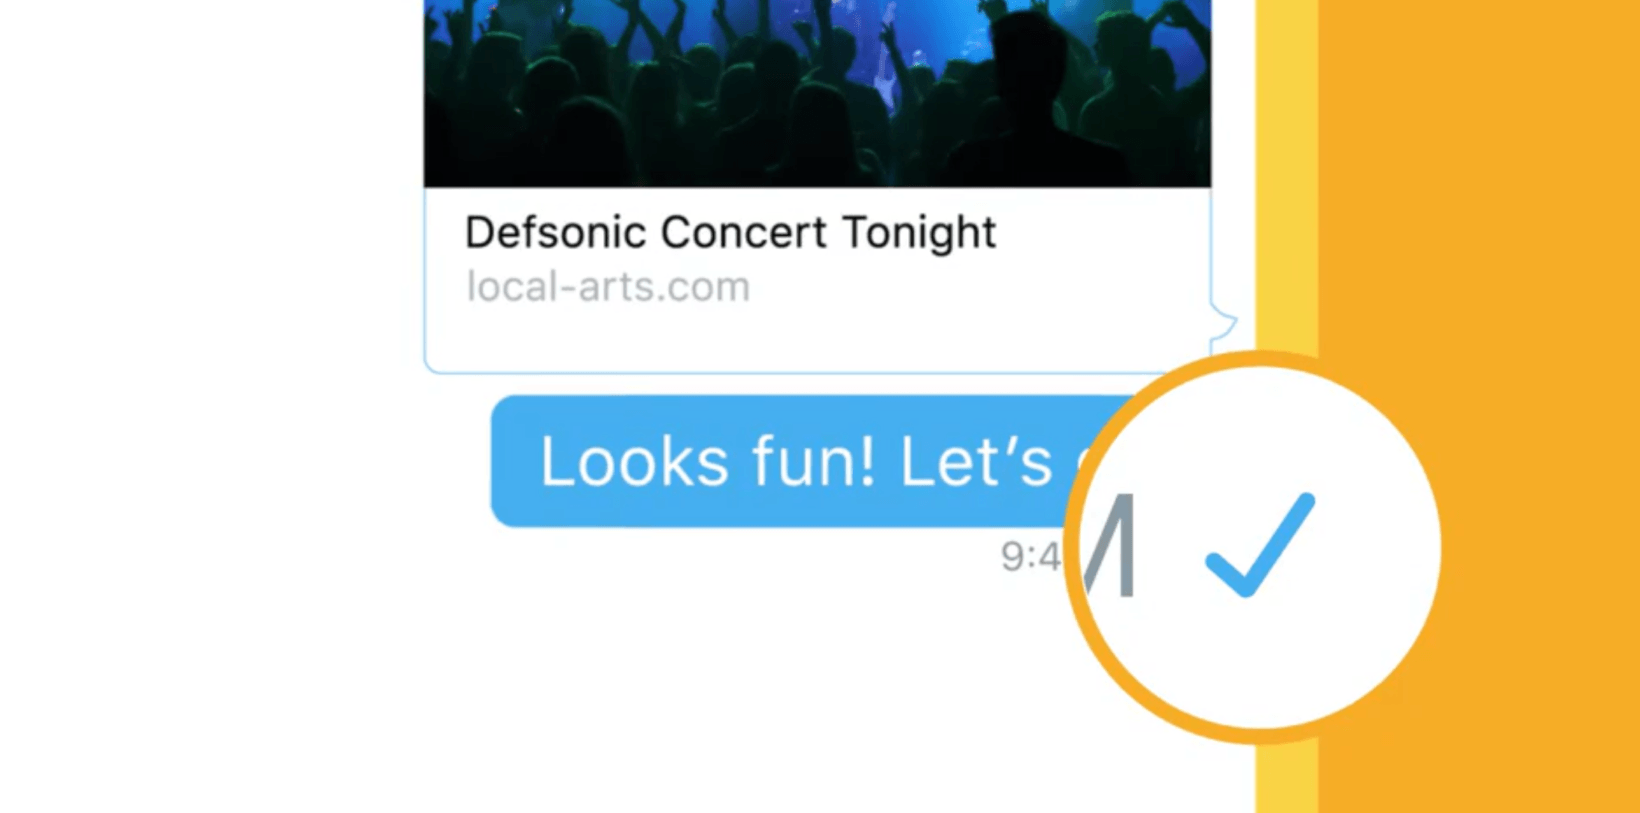 Twitter adds read receipts and much more to Direct Messages